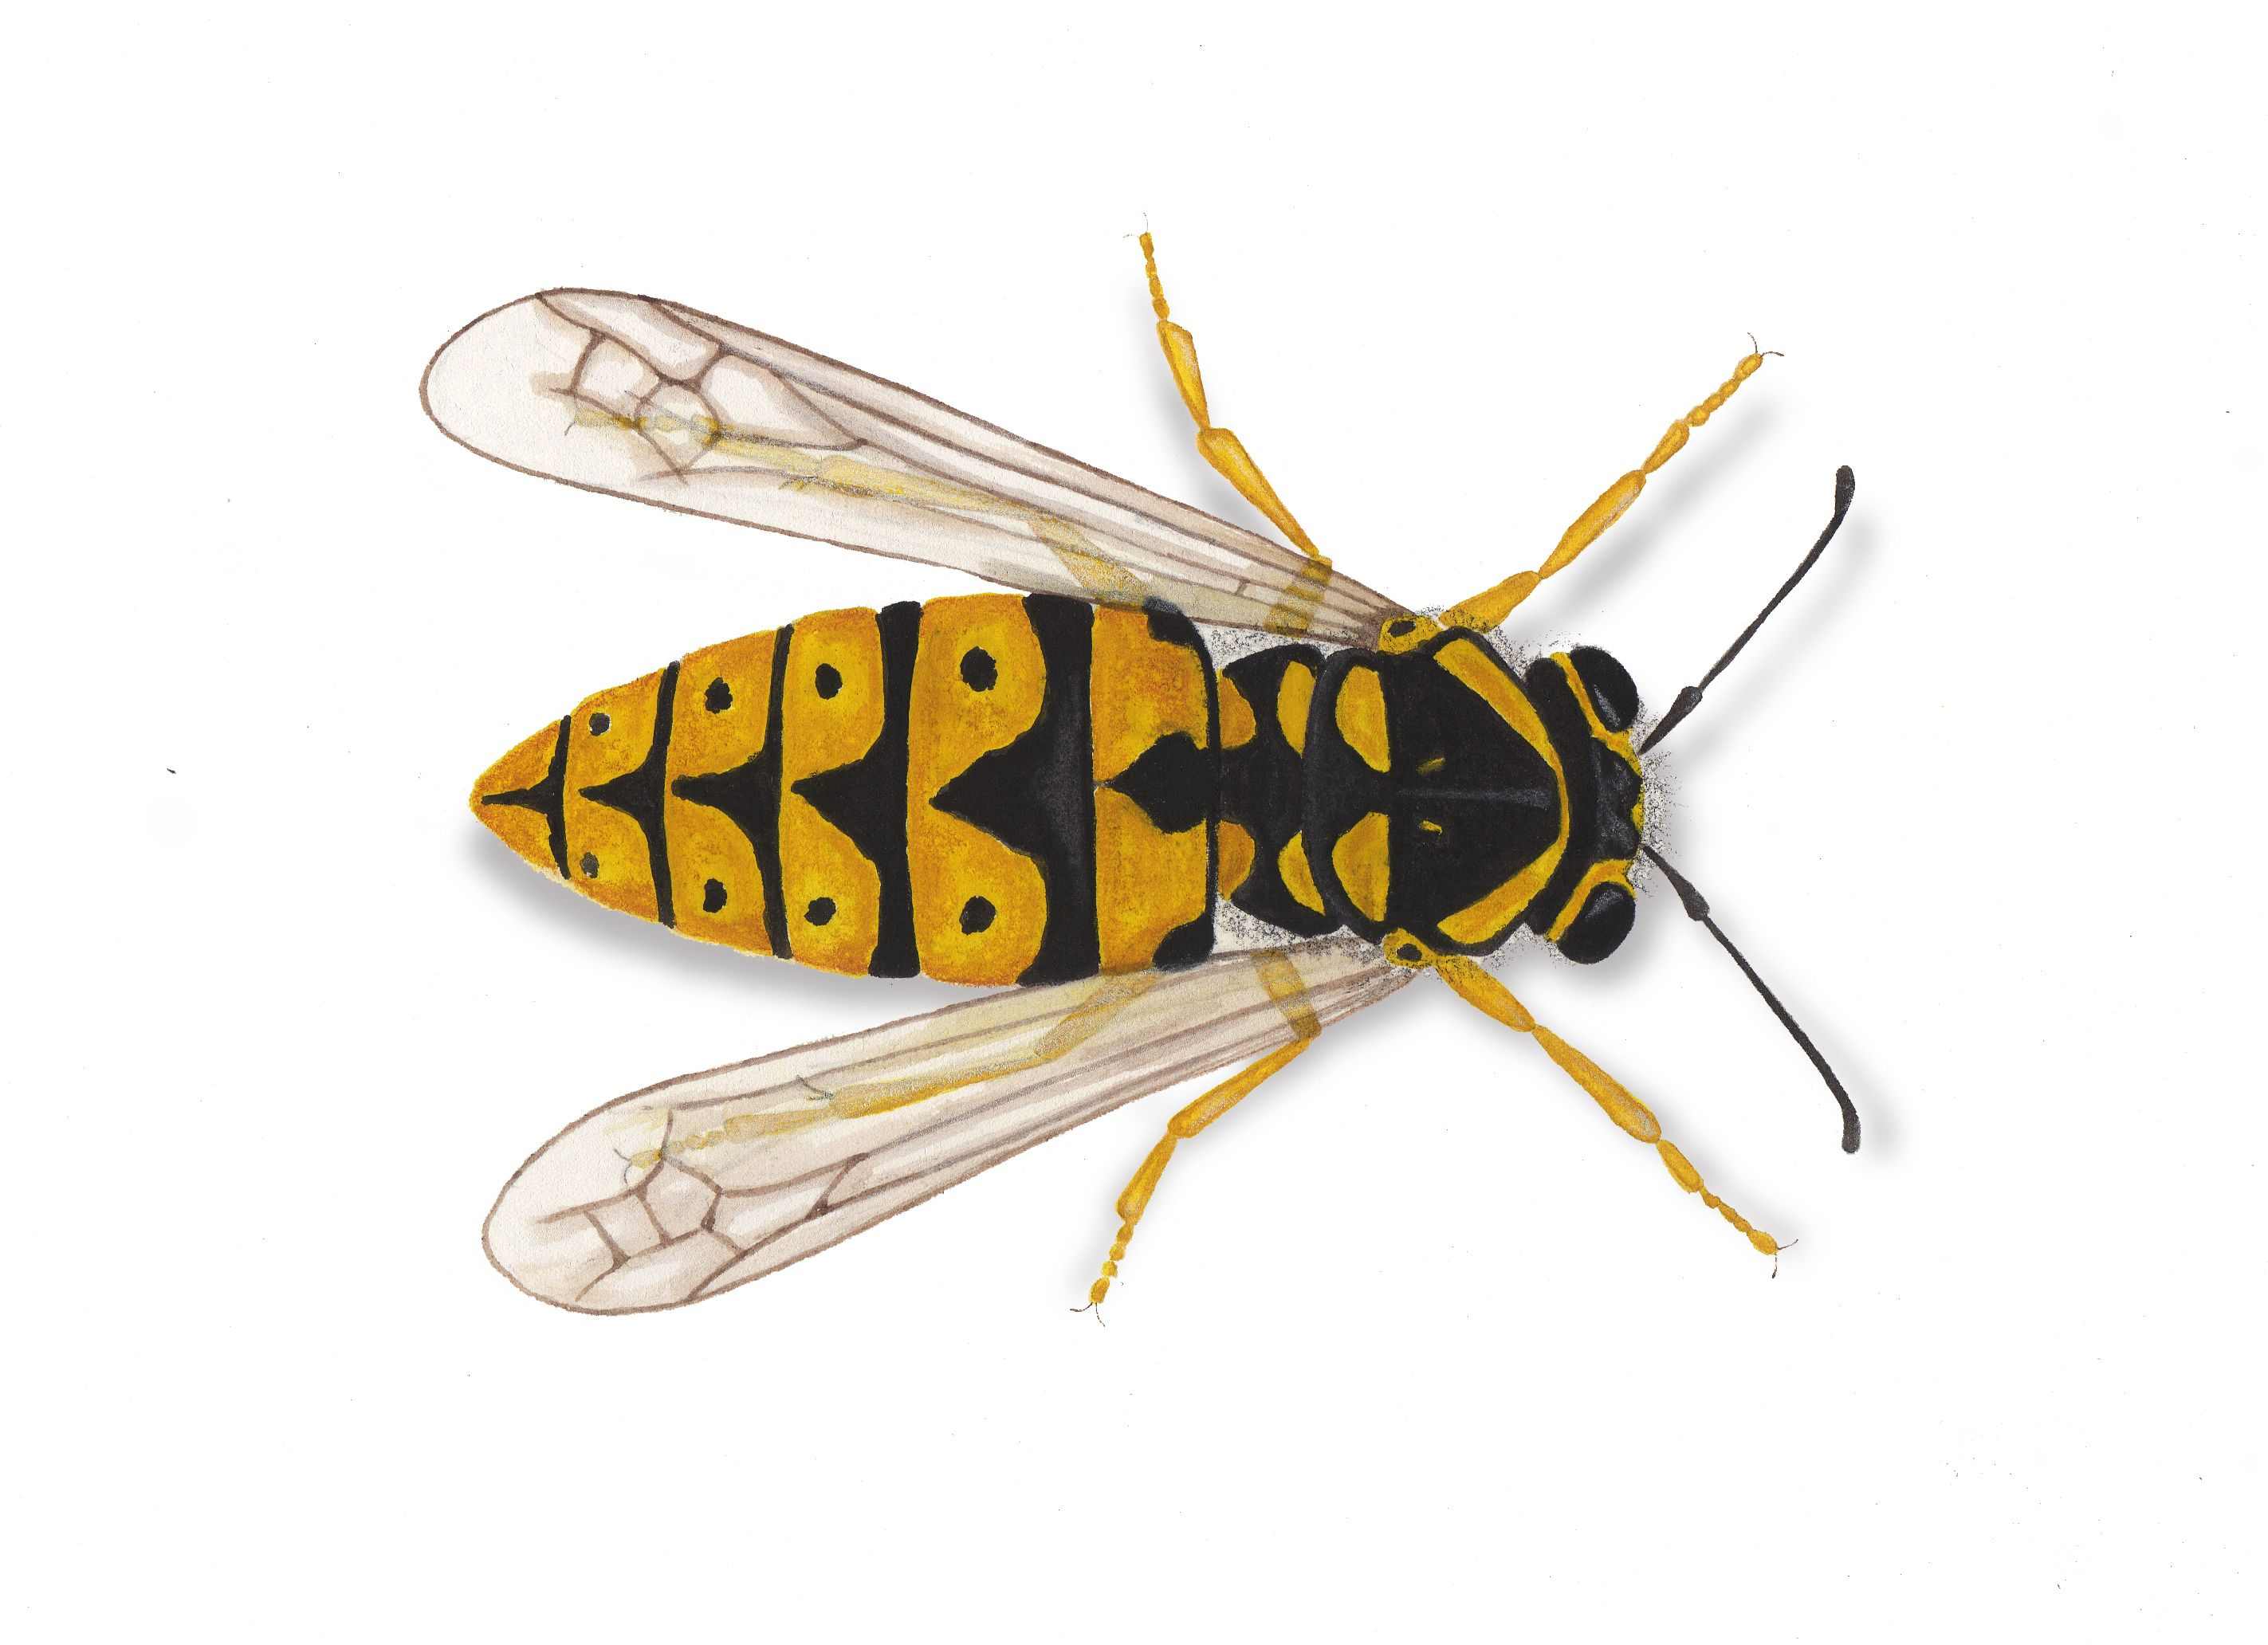 In Western States There Are Two Distinct Types Of Social Wasps Yellow Jackets And Paper Wasps Description From Qafymapas Keep Pl I Searched F Wasp Bee Get Rid Of Wasps